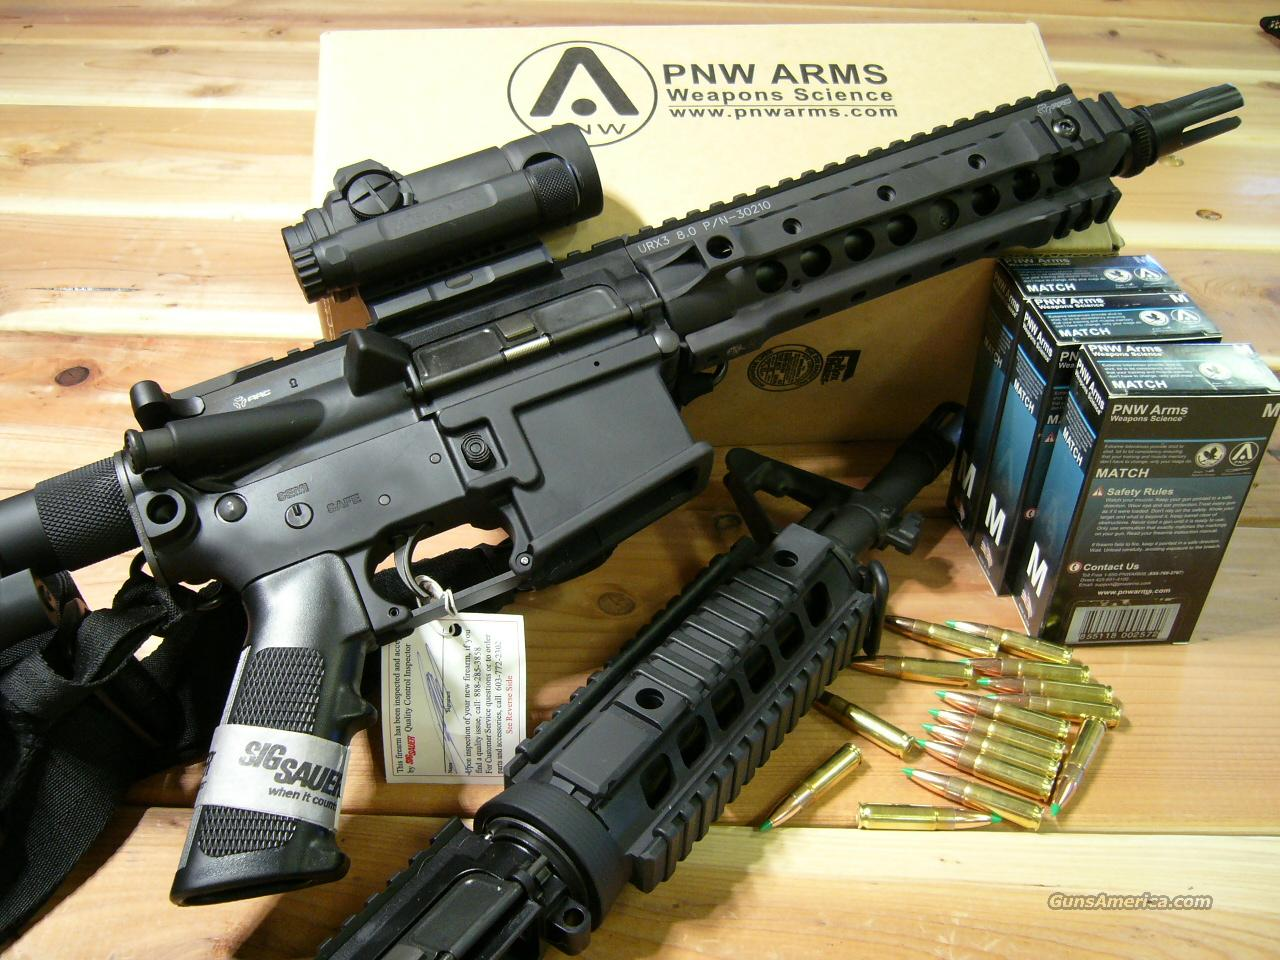 LEGAL SBR NO STAMP SIG SAUER & KNIGHTS W/ MAGPUL & AIMPOINT NO STAMP!  Guns > Rifles > Tactical/Sniper Rifles